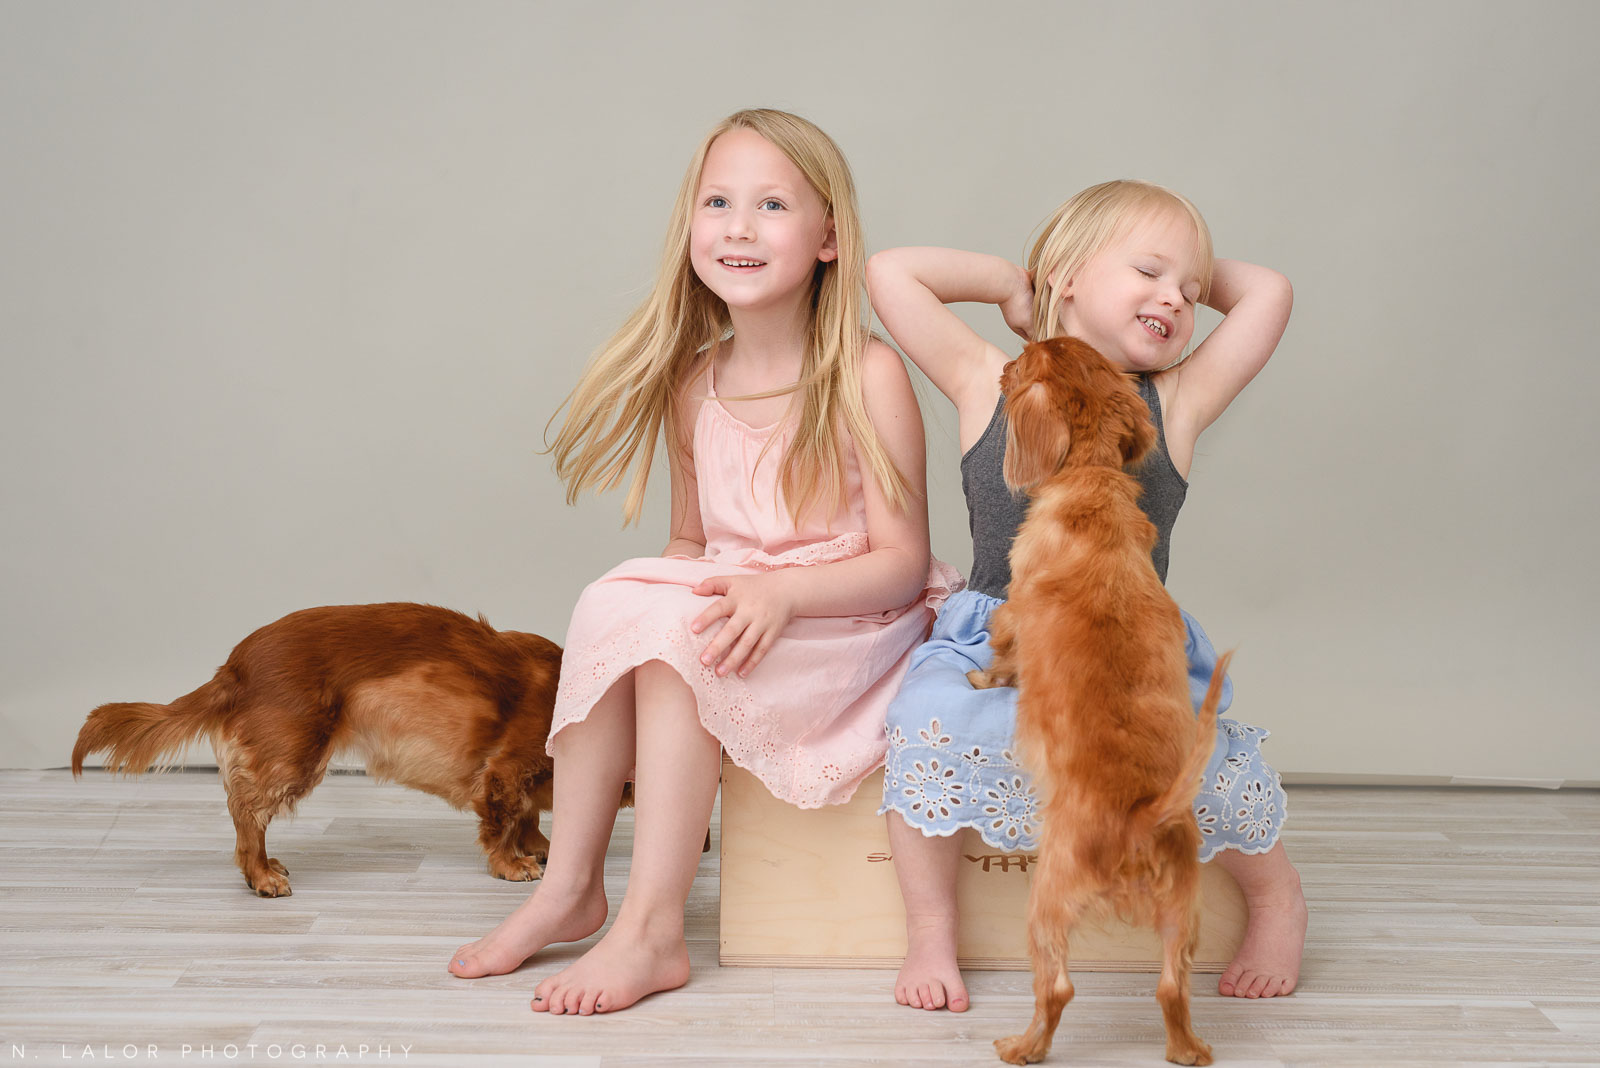 Girls with the family dogs. Family photo session with N. Lalor Photography. Greenwich, Connecticut studio photographer.